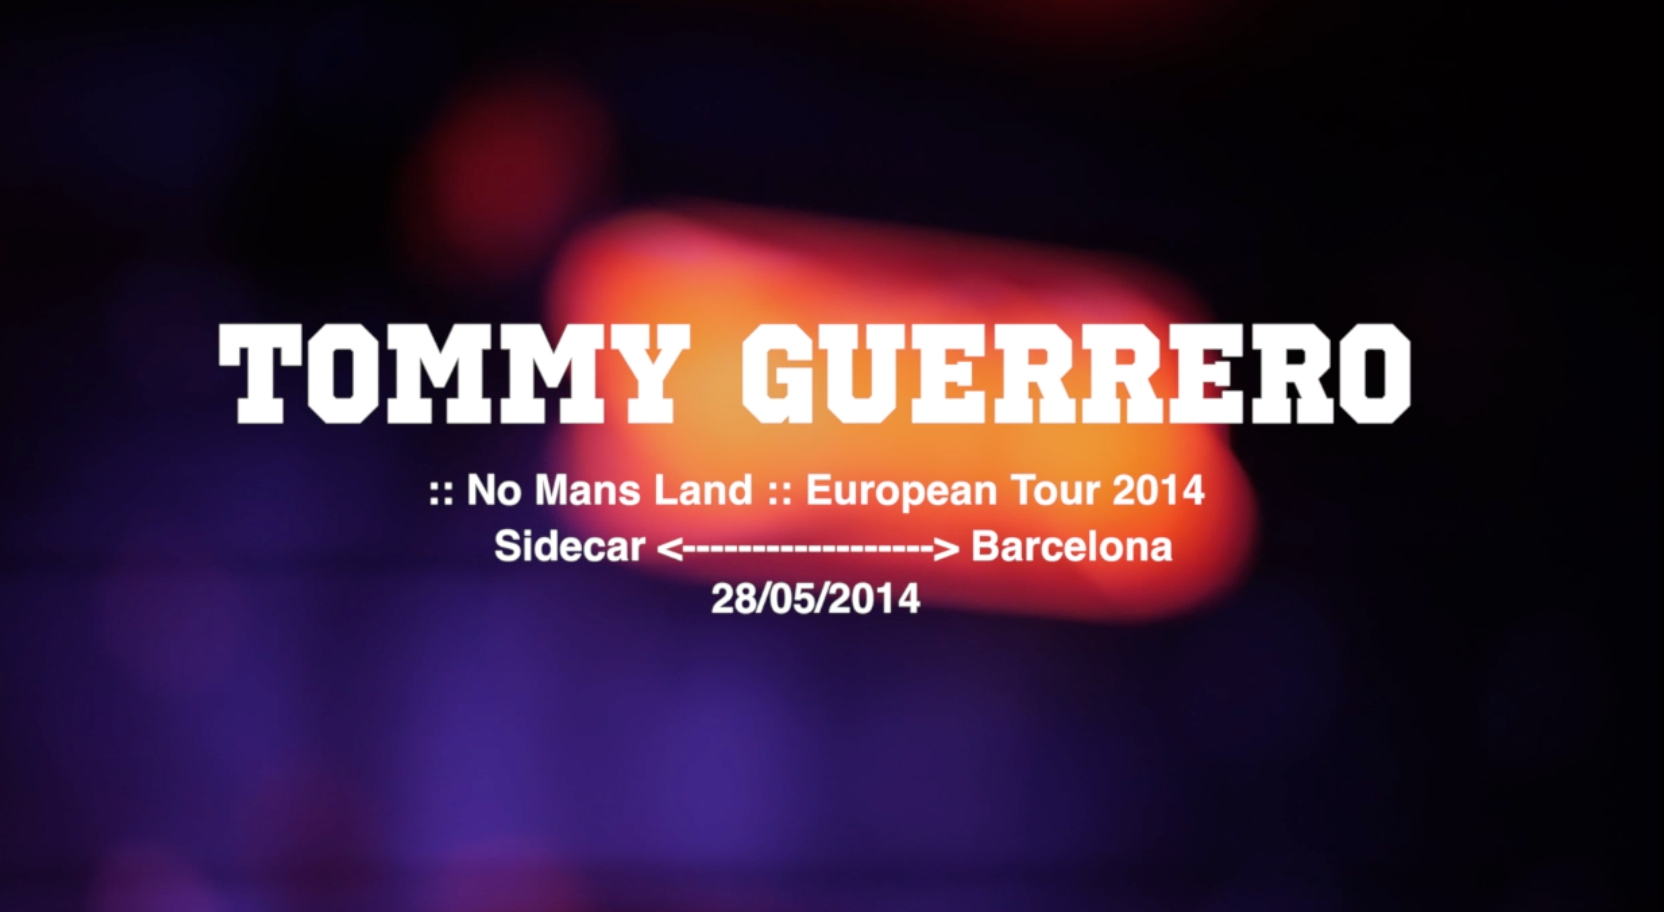 Tommy Guerrero live @ Sidecar Barcelona